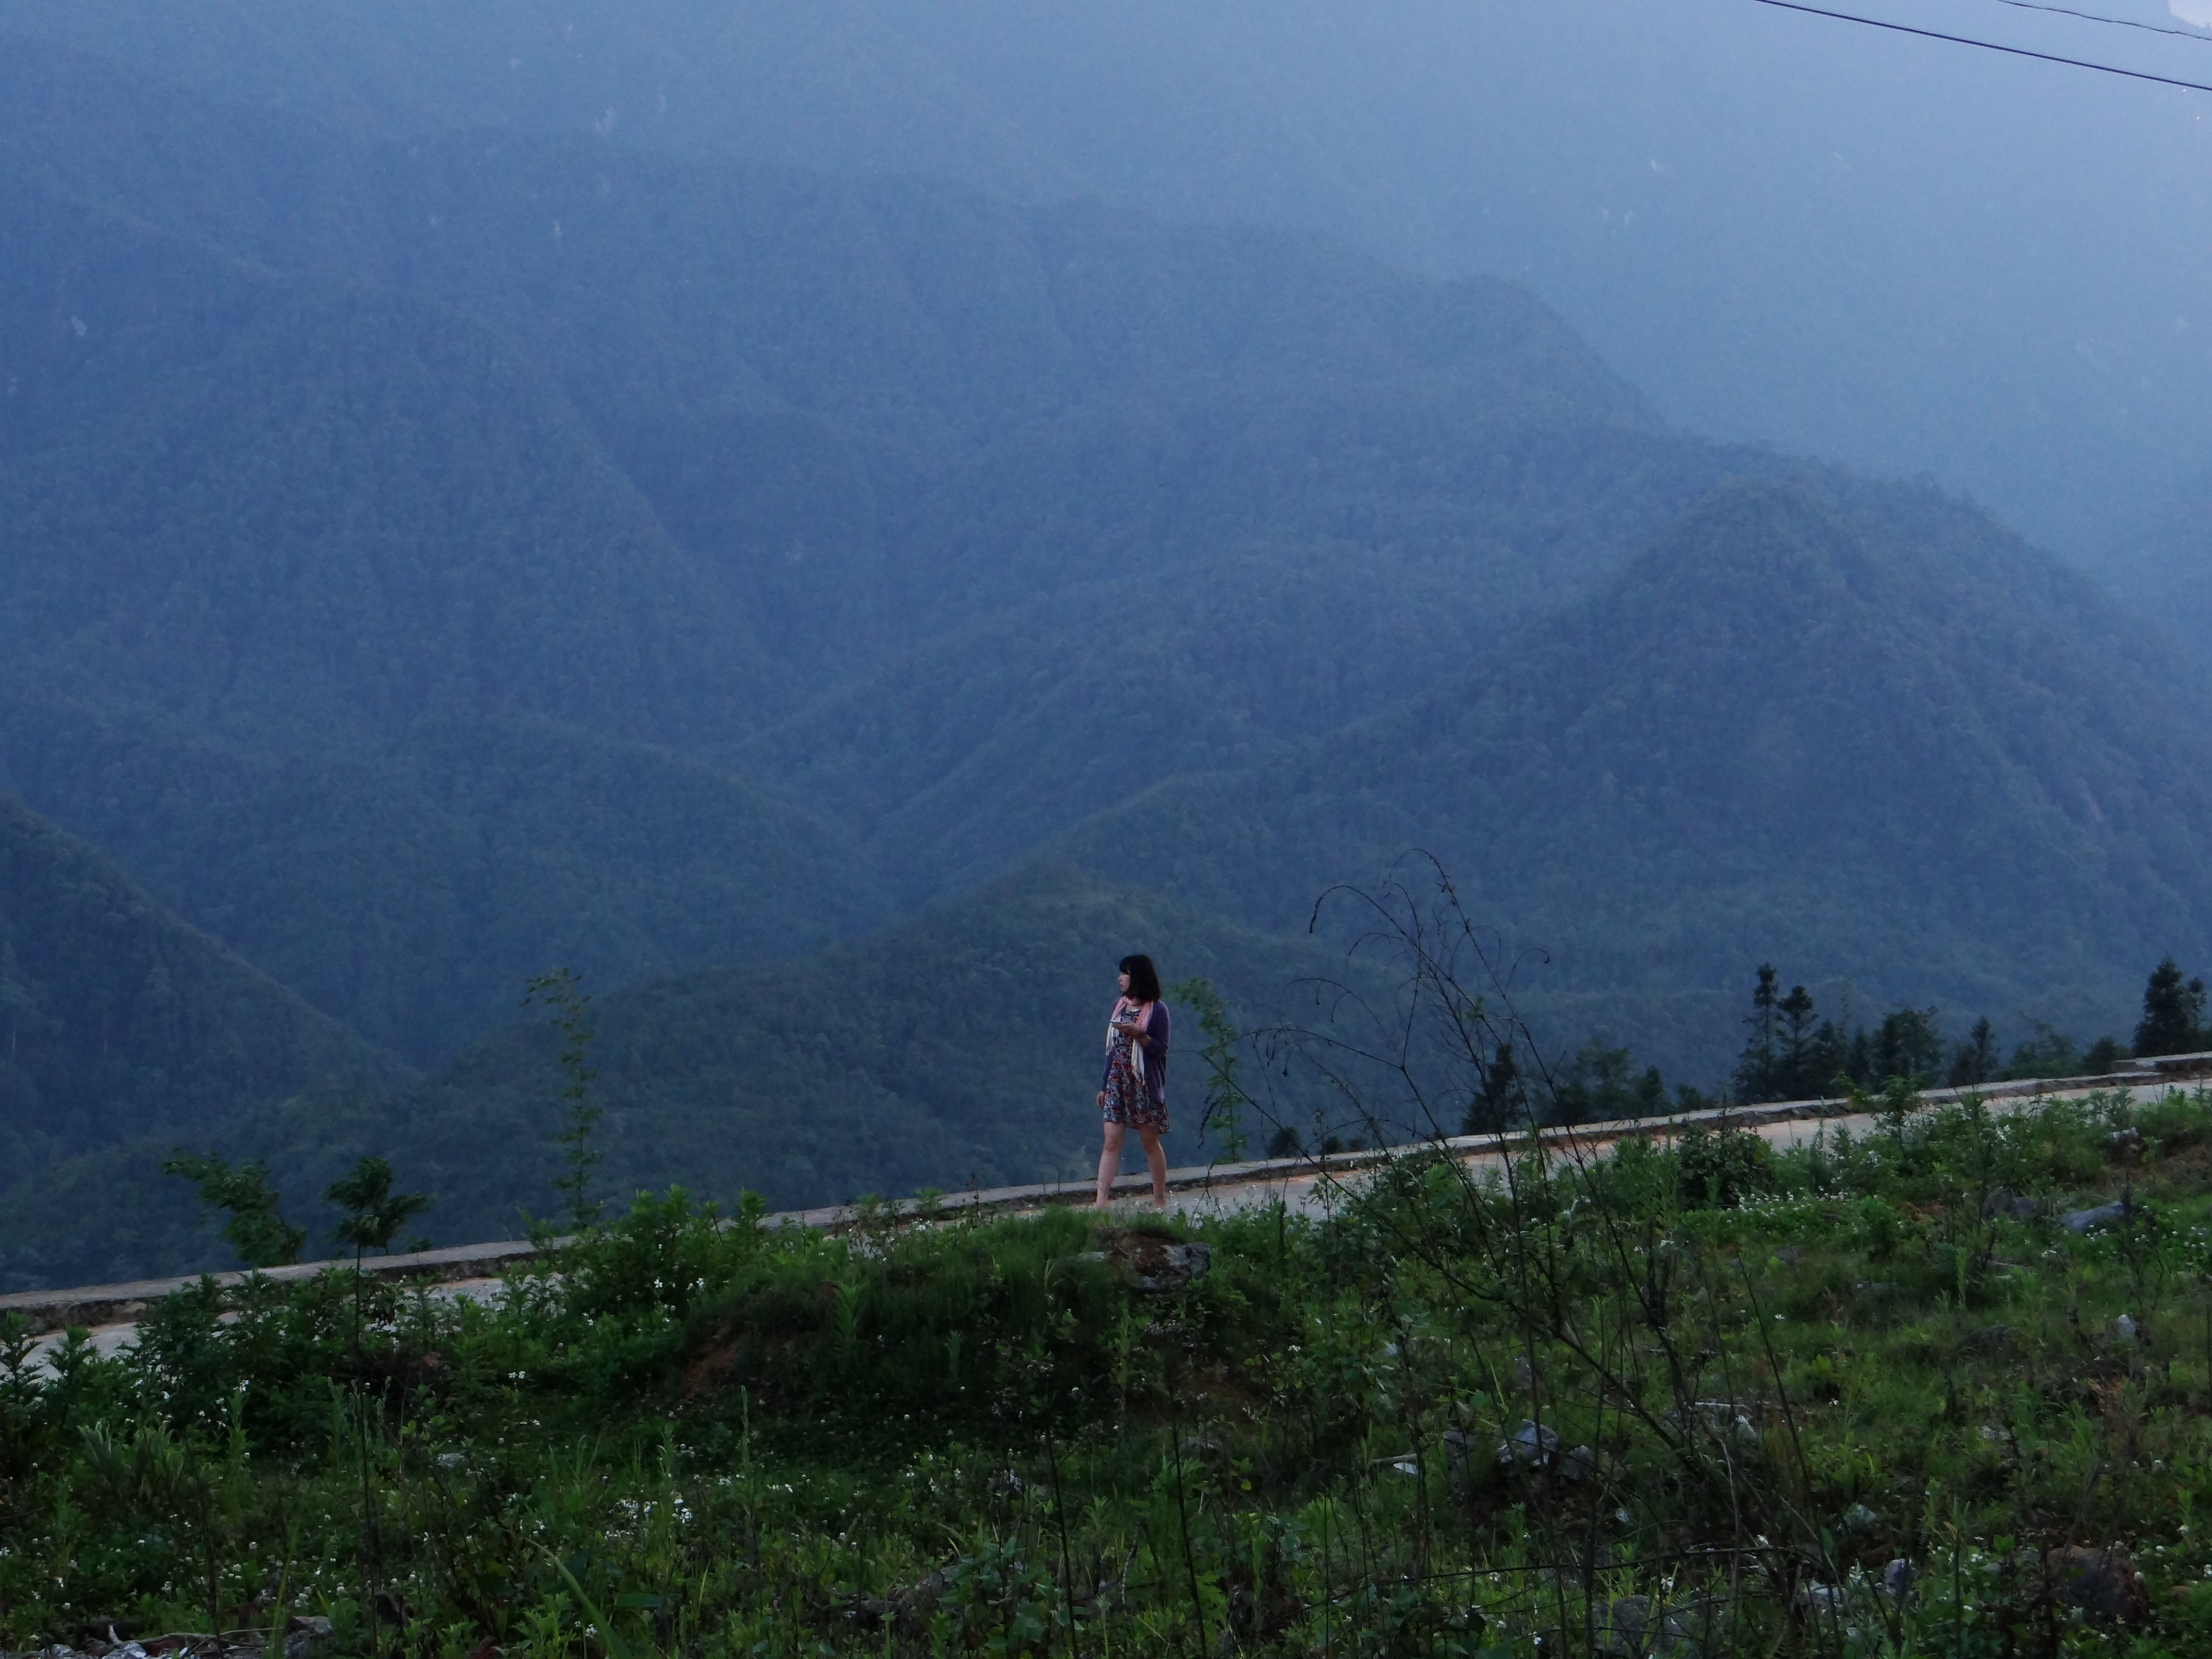 A dark-haired woman walking across a path with lush undulating hills behind her